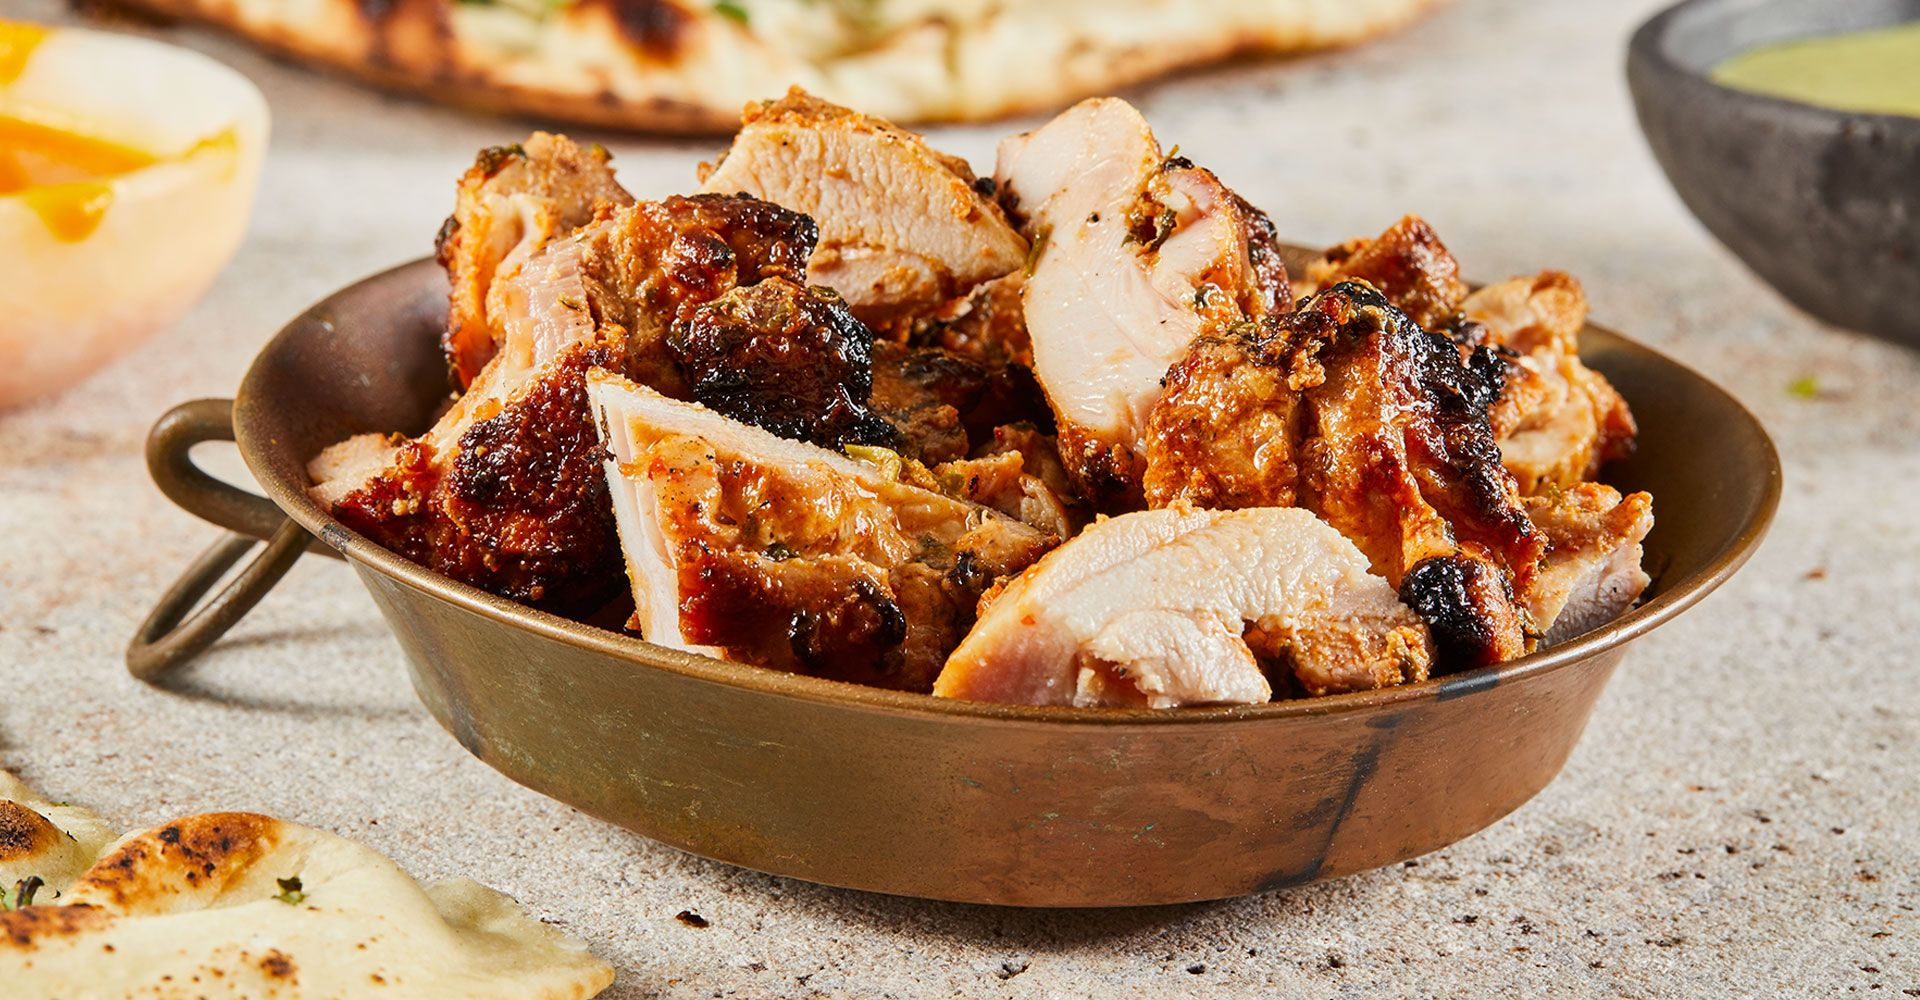 tandoori cooked chicken in a bowl